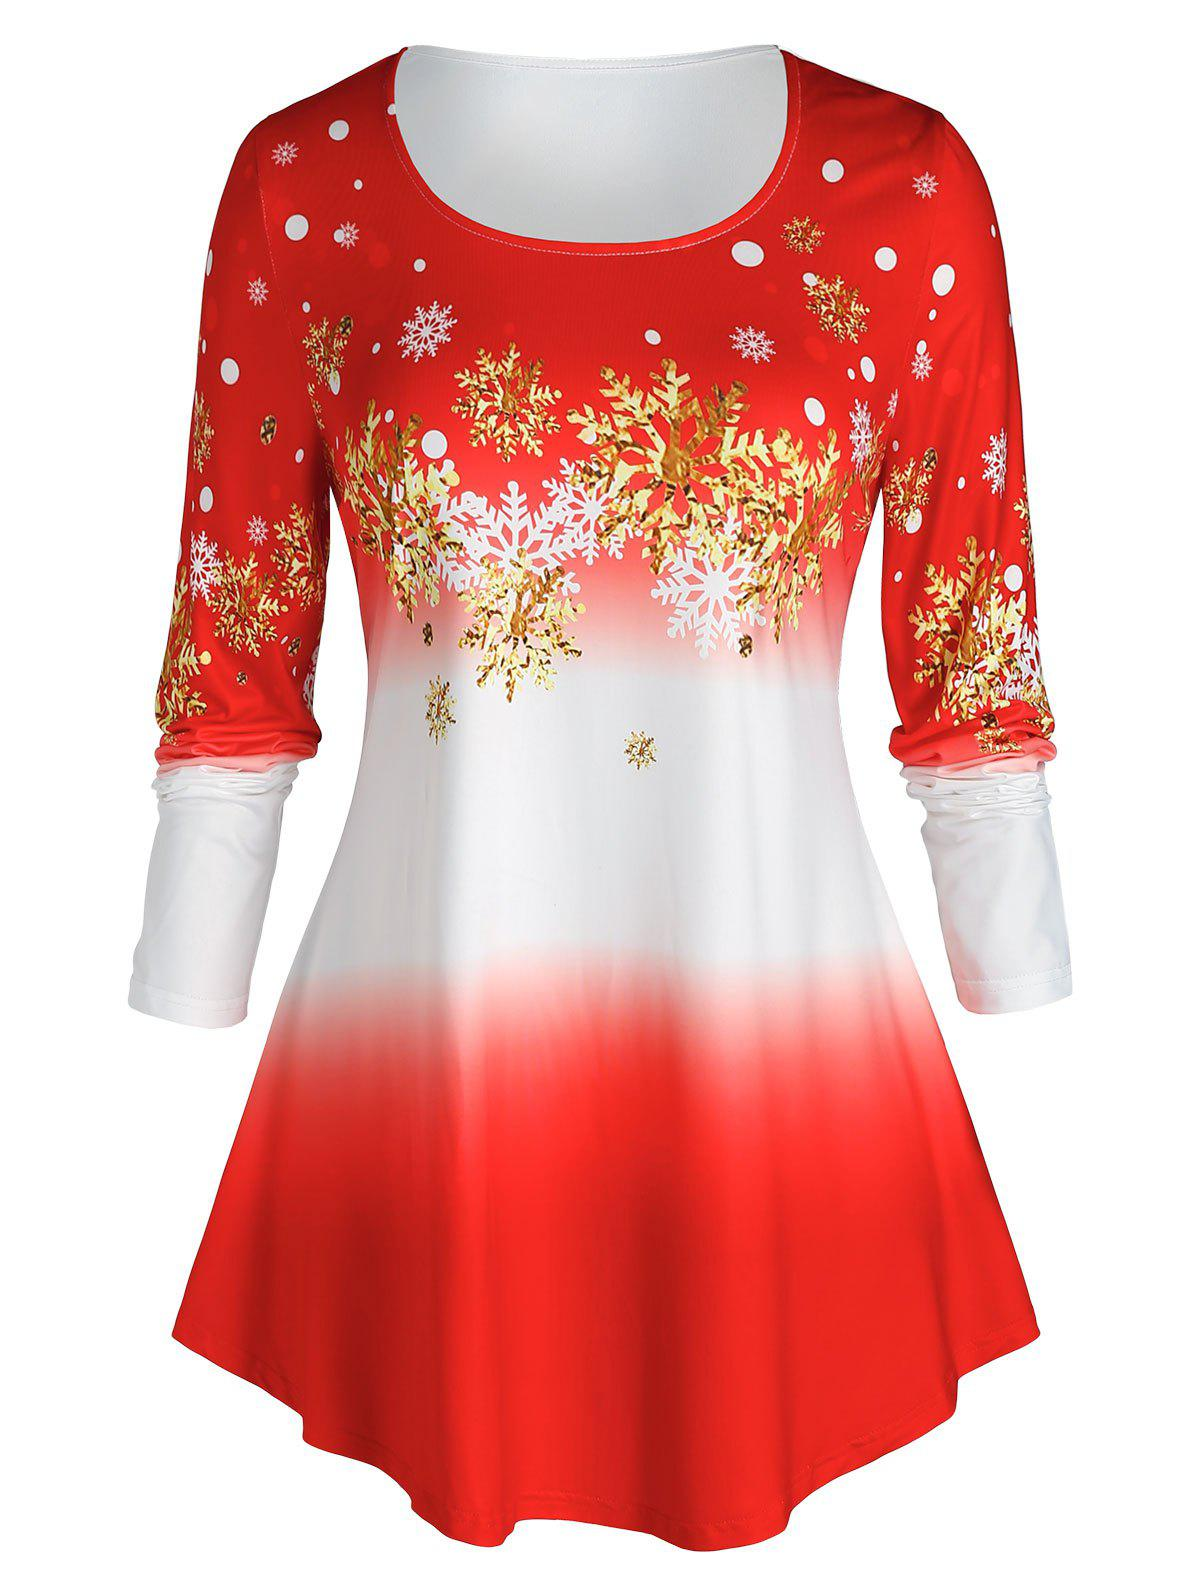 Plus Size Ombre Color Snowflake Print Christmas Tee - RED 5X